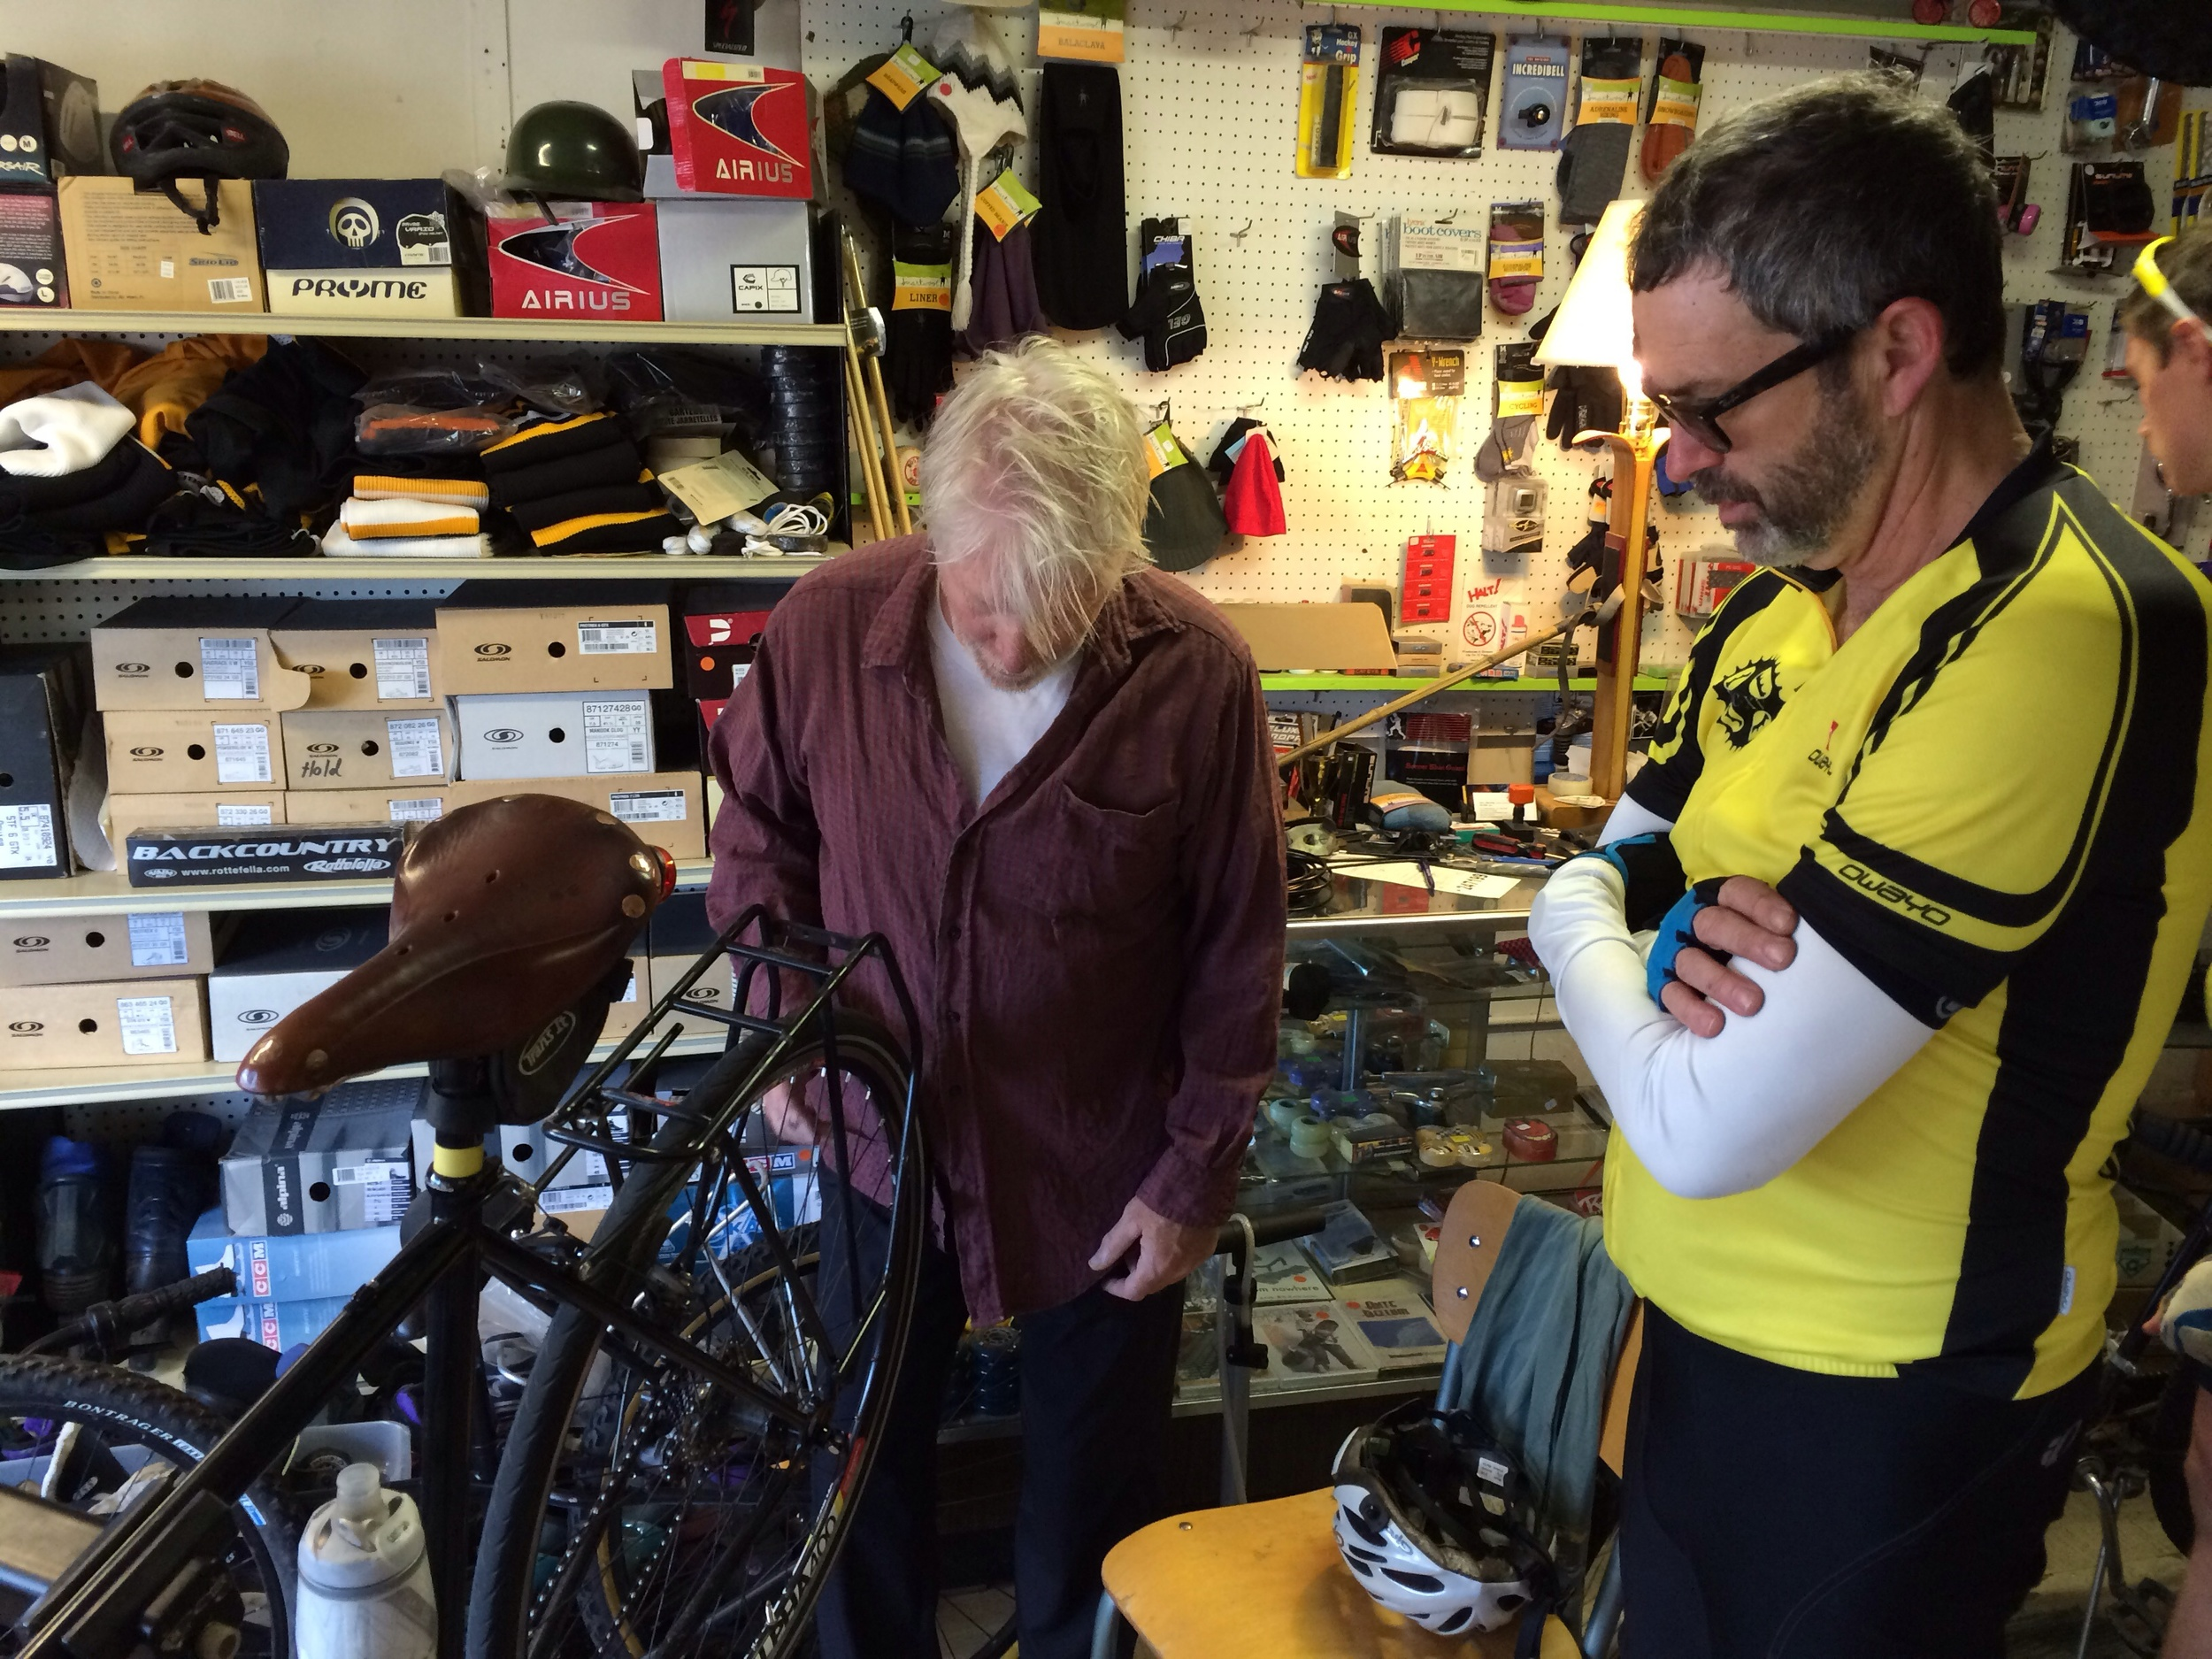 The local mechanic rolled out of bed to give it the old college try, as Ed looks on dubiously.